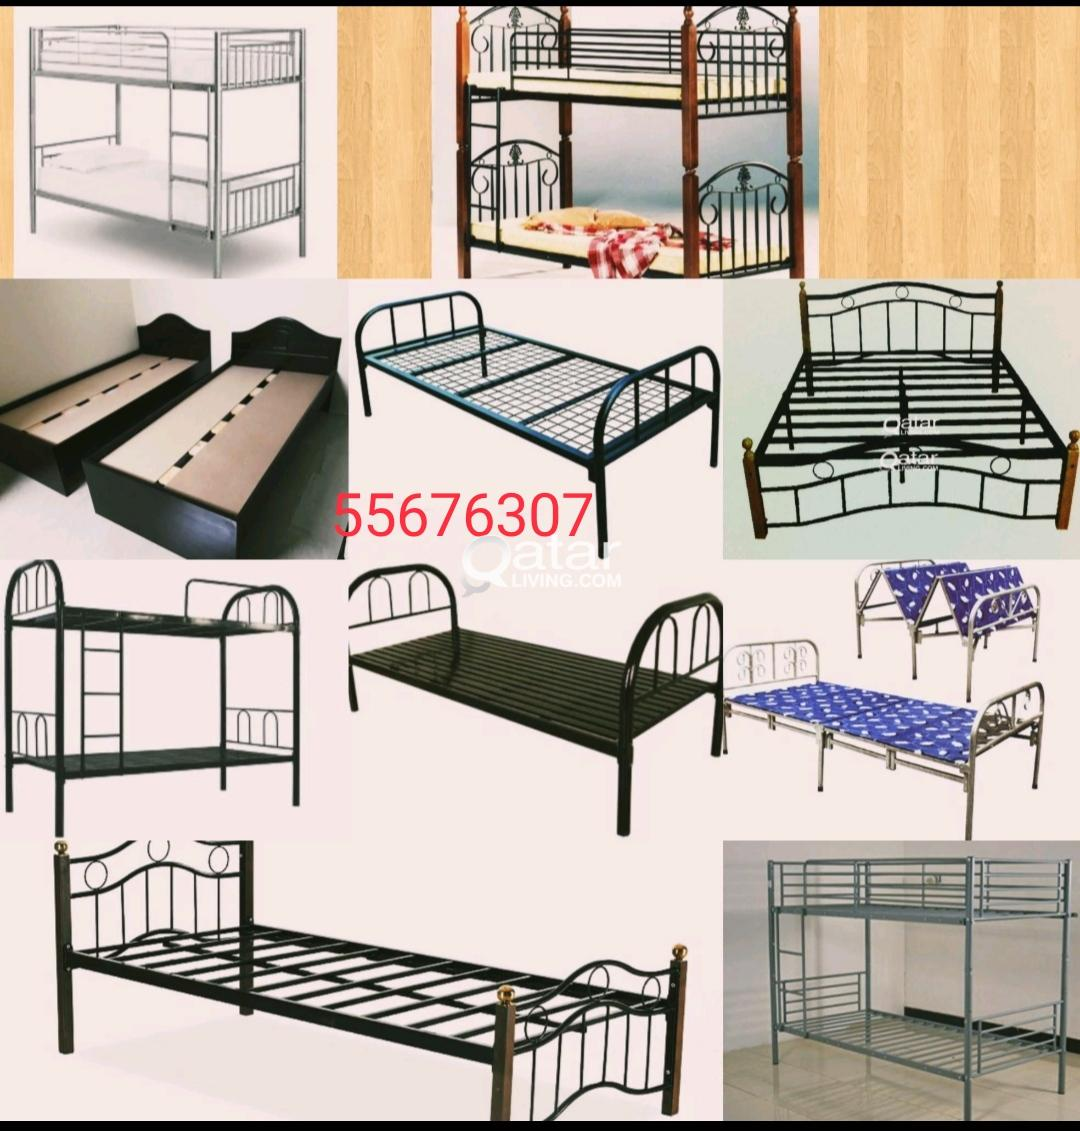 Brands New furniture what's app 55676307